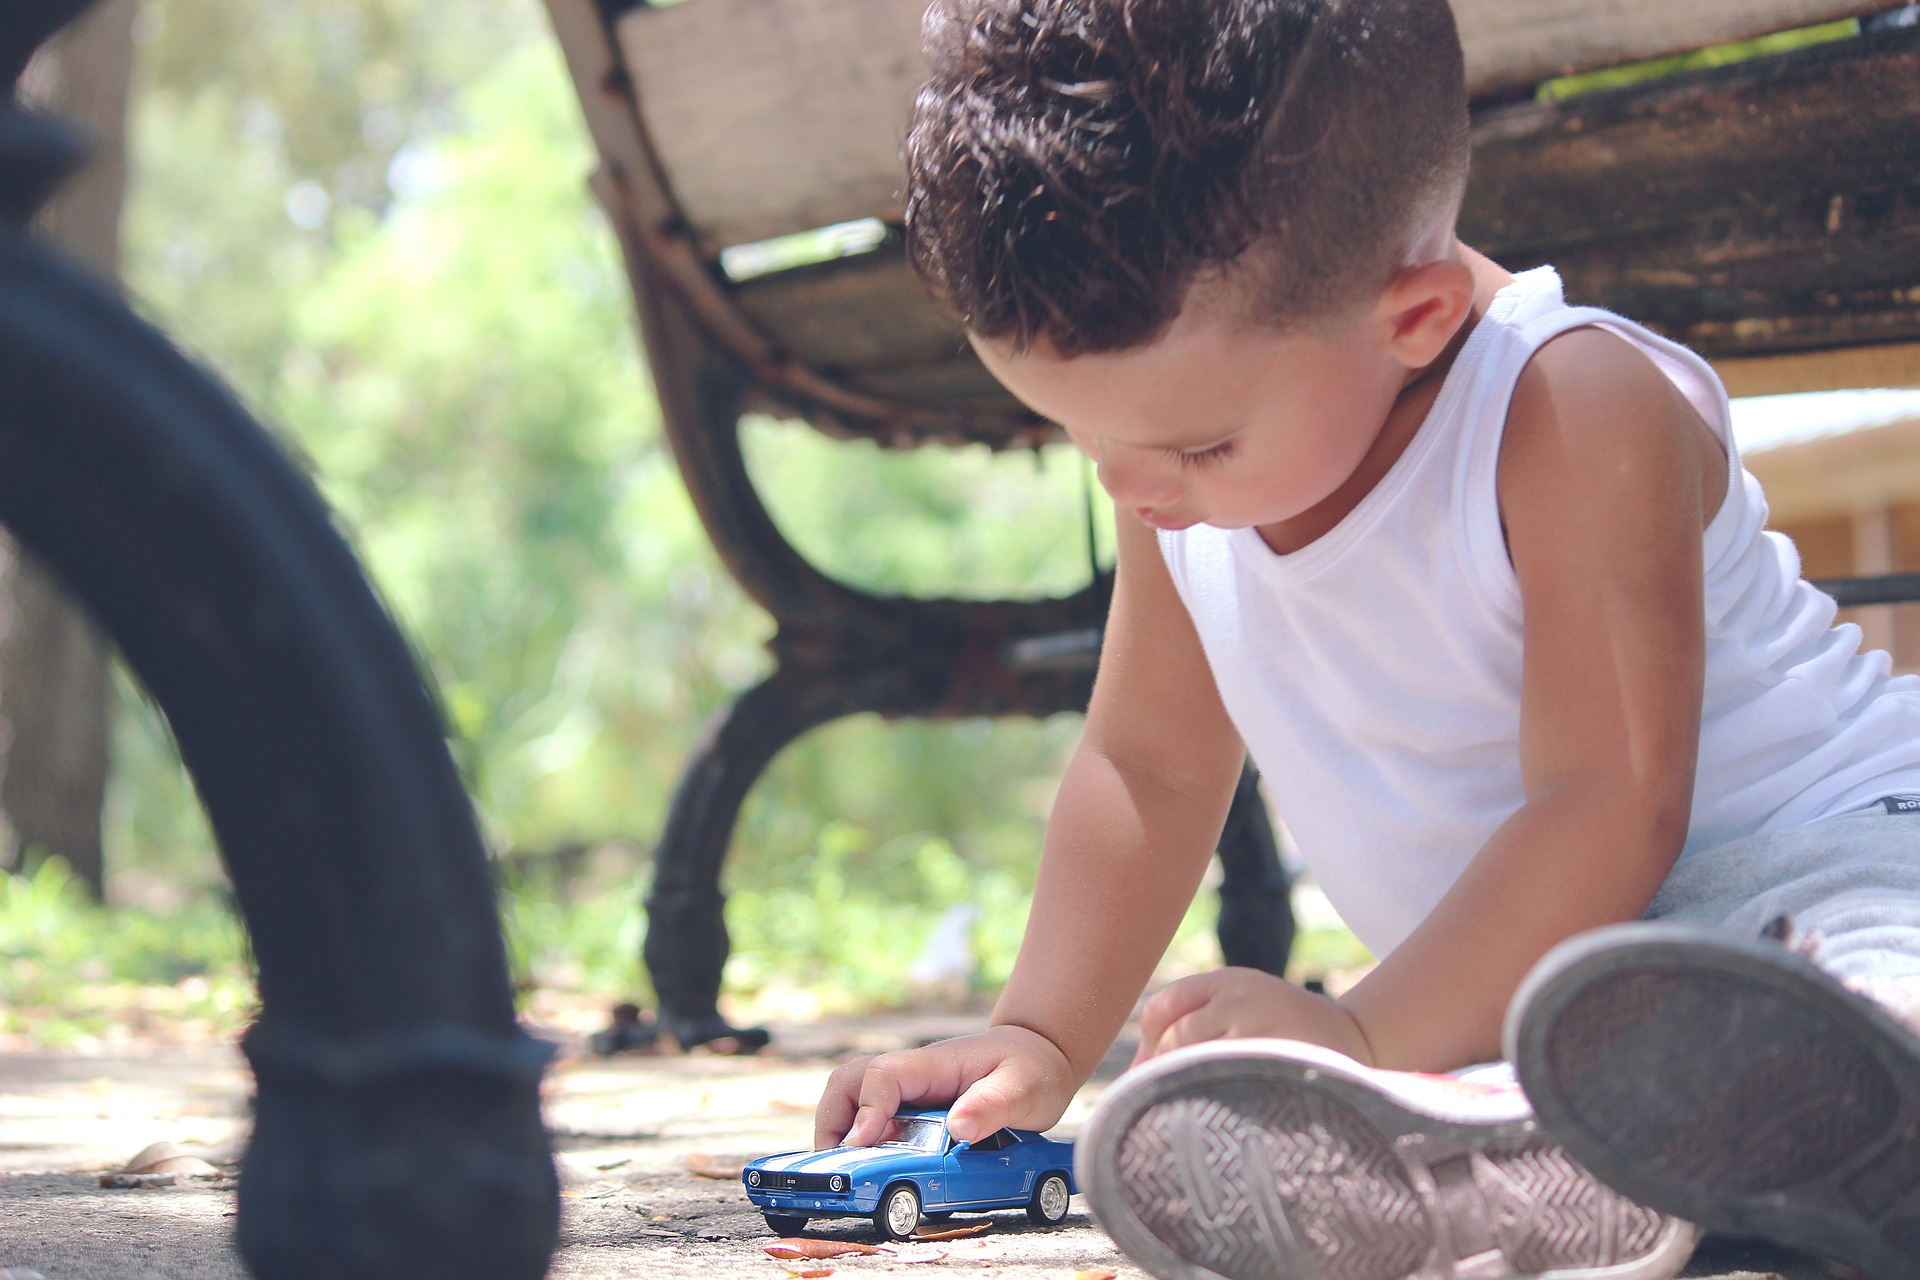 Boy Playing with Car by Bench